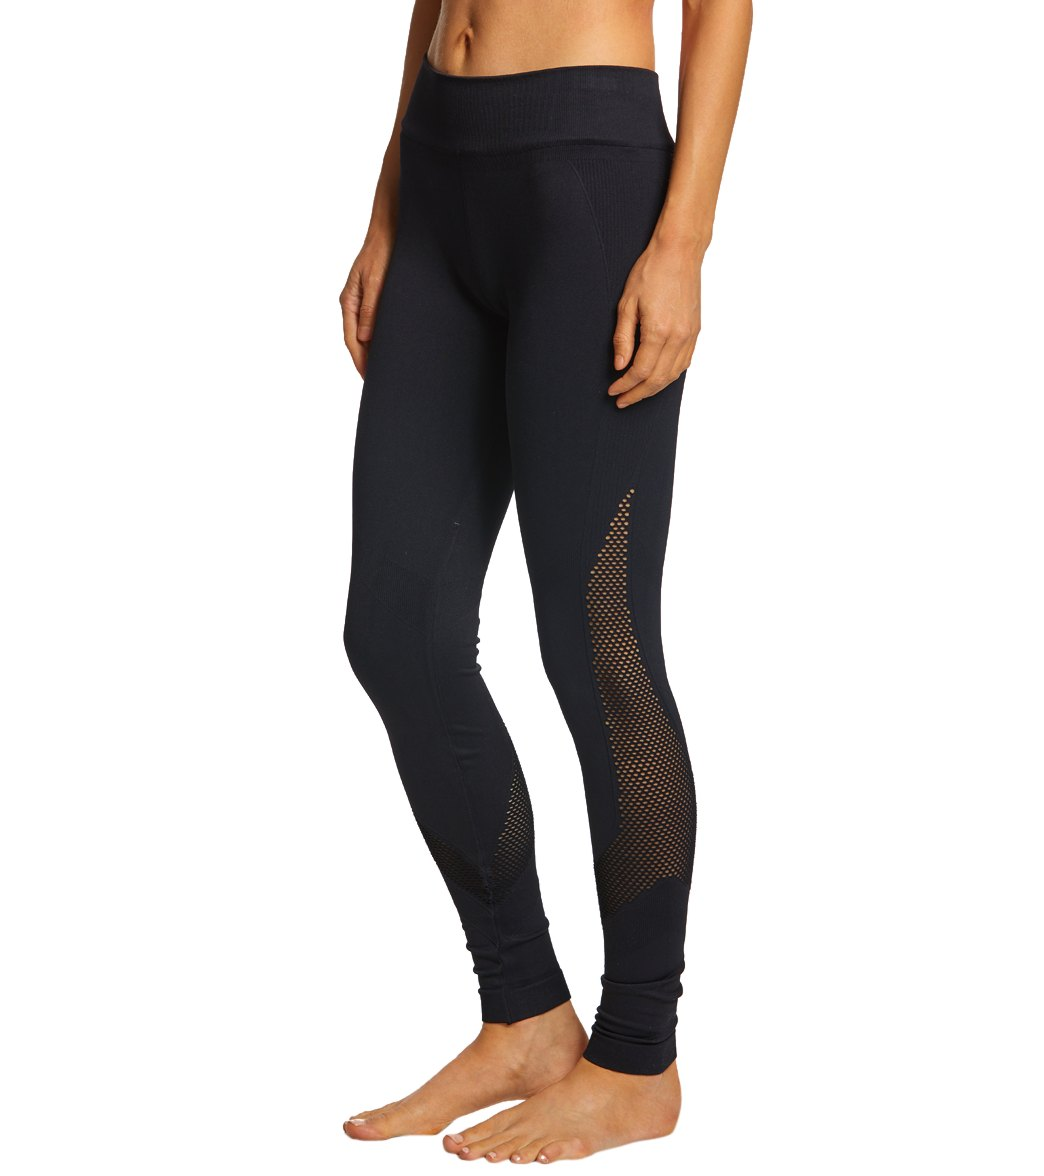 NUX Network Seamless Yoga Leggings - Black Spandex